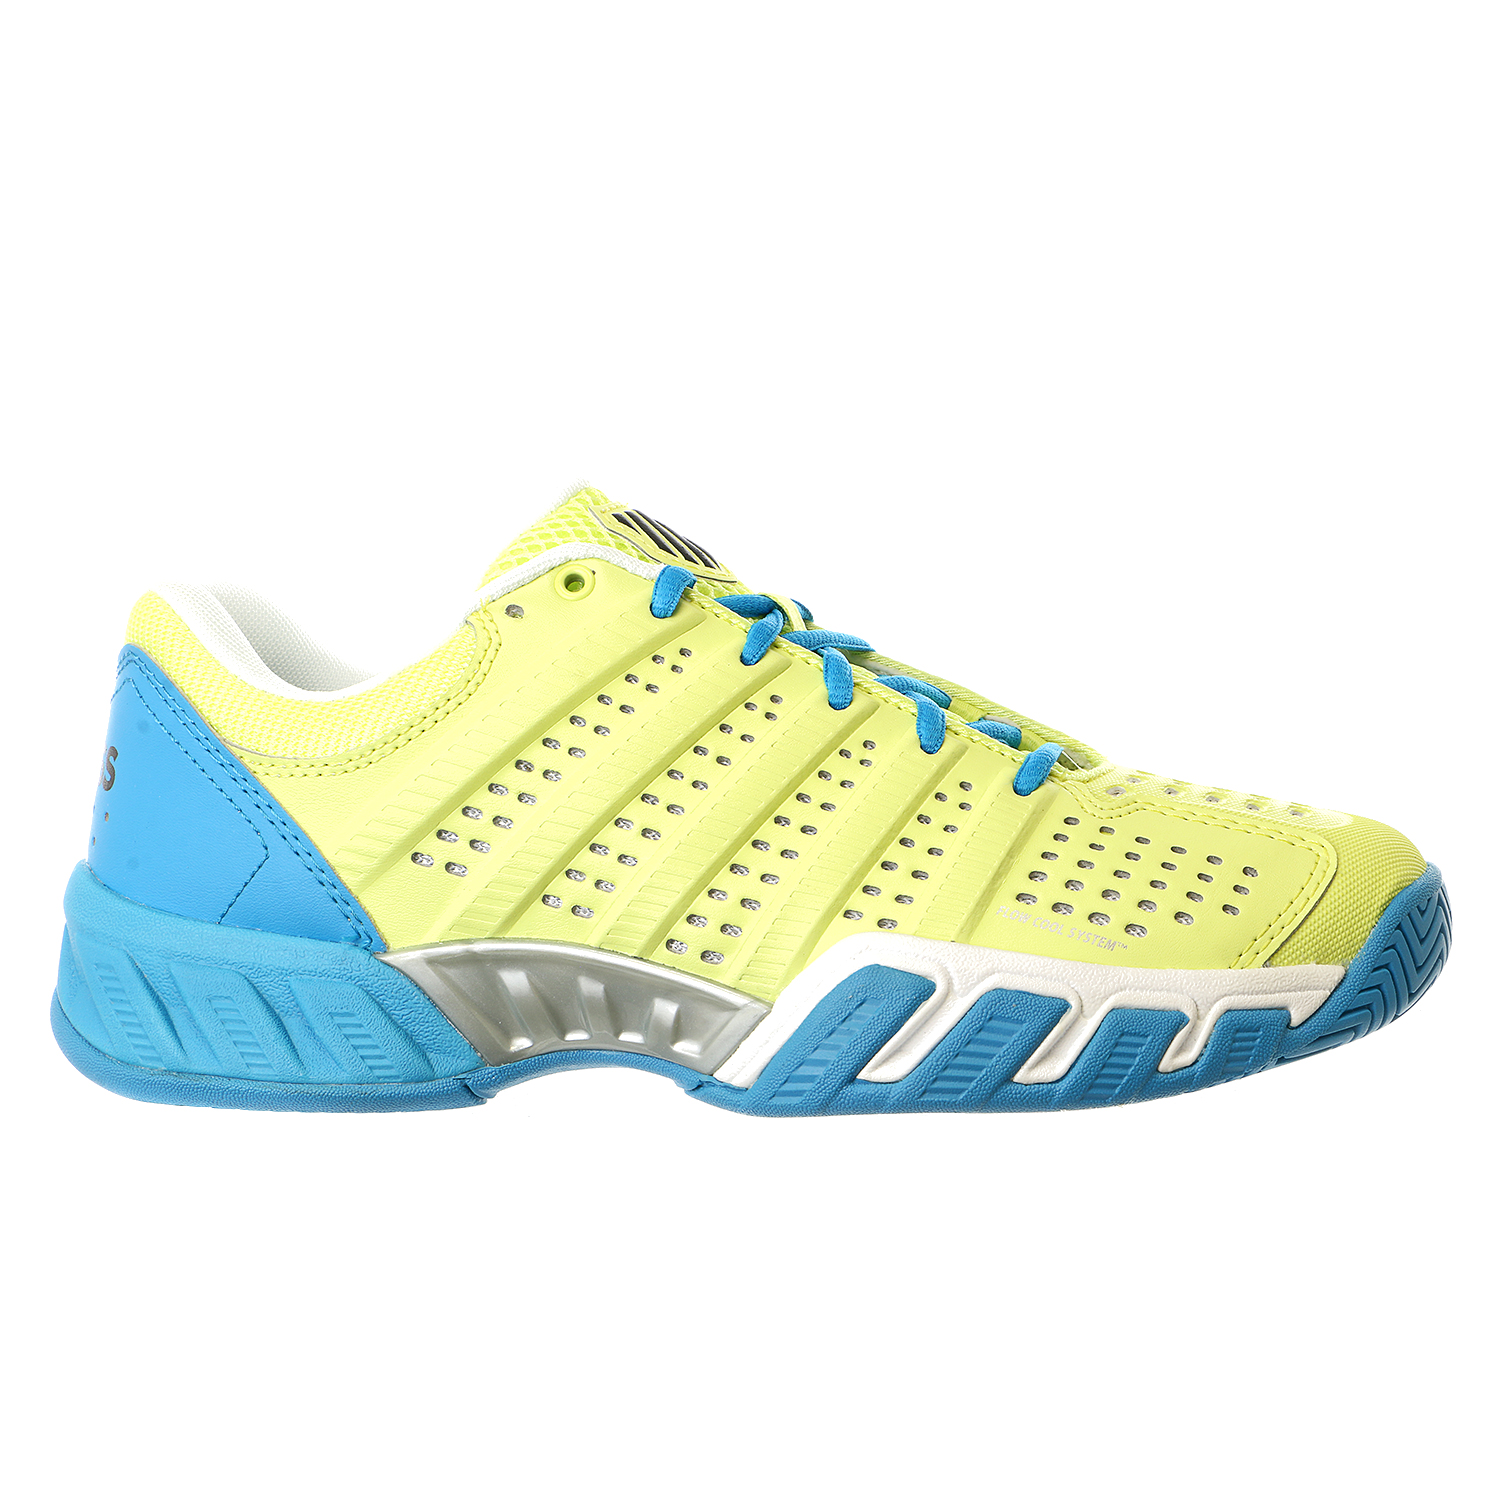 K-Swiss Bigshot Light 2.5 Lightweight Tennis Sneaker Shoe Boys by K-Swiss